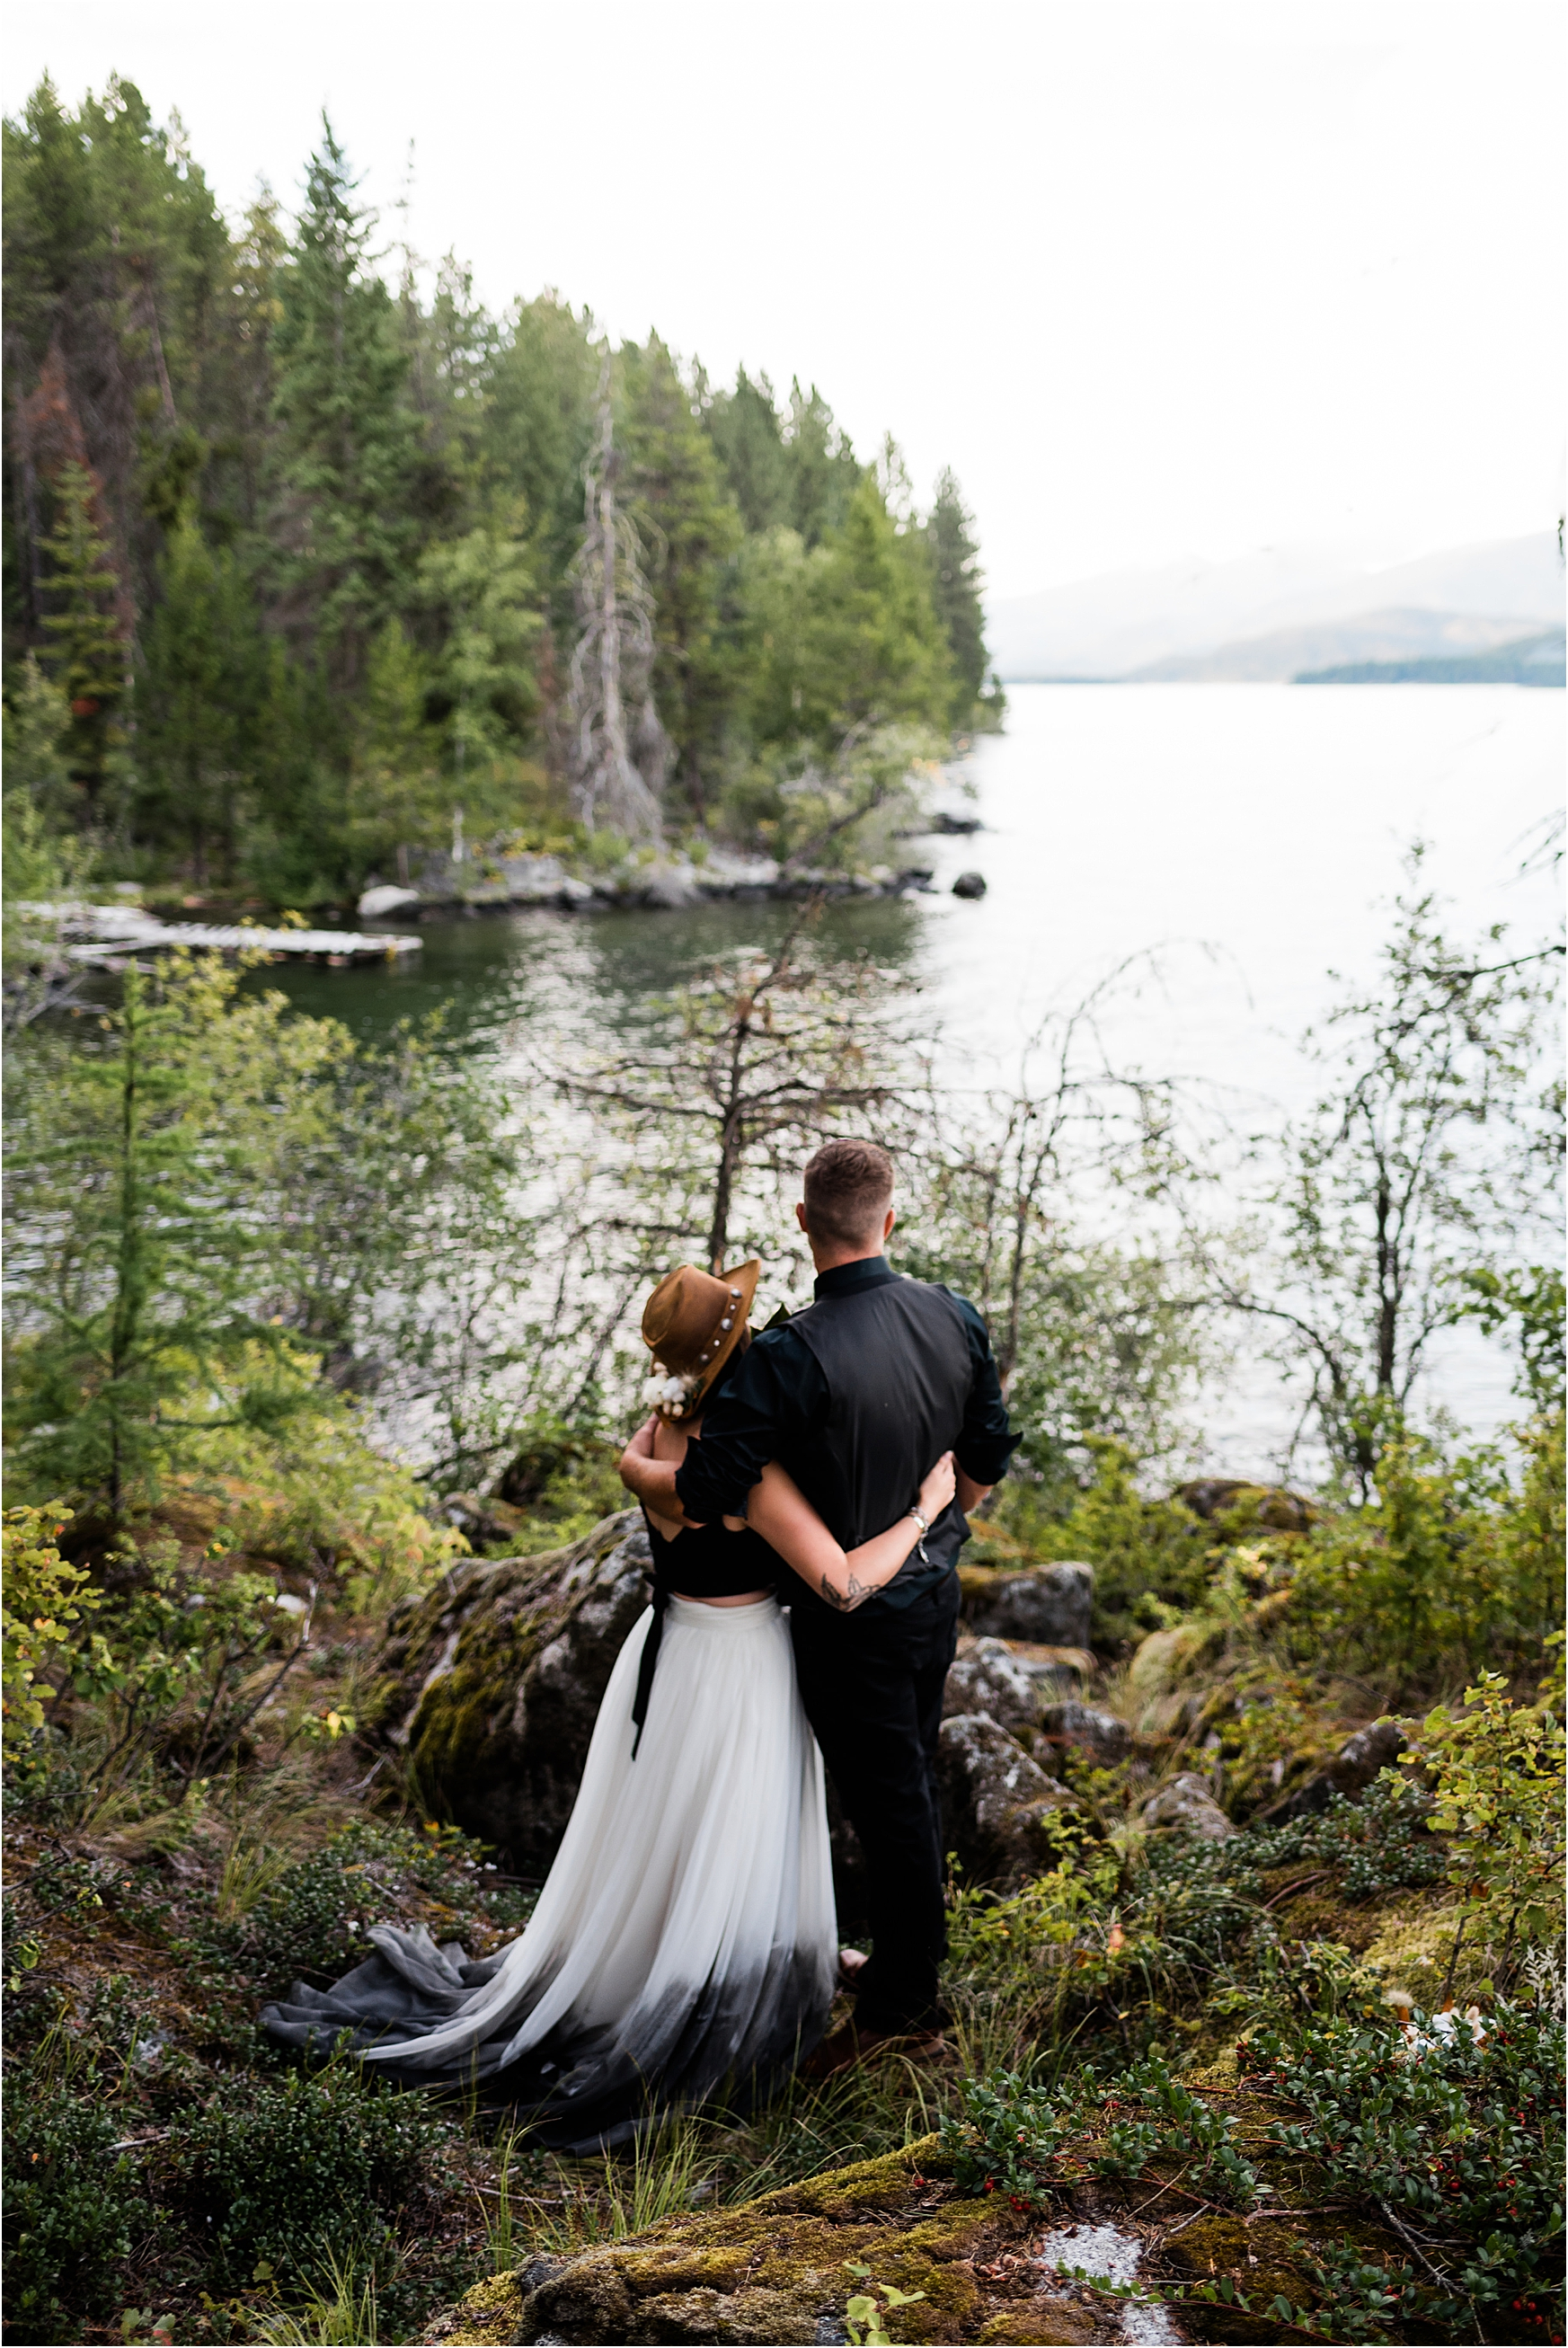 Shelby & Garrett walking through the woods around Priest Lake during their autumn elopement. Image by Forthright Photo.